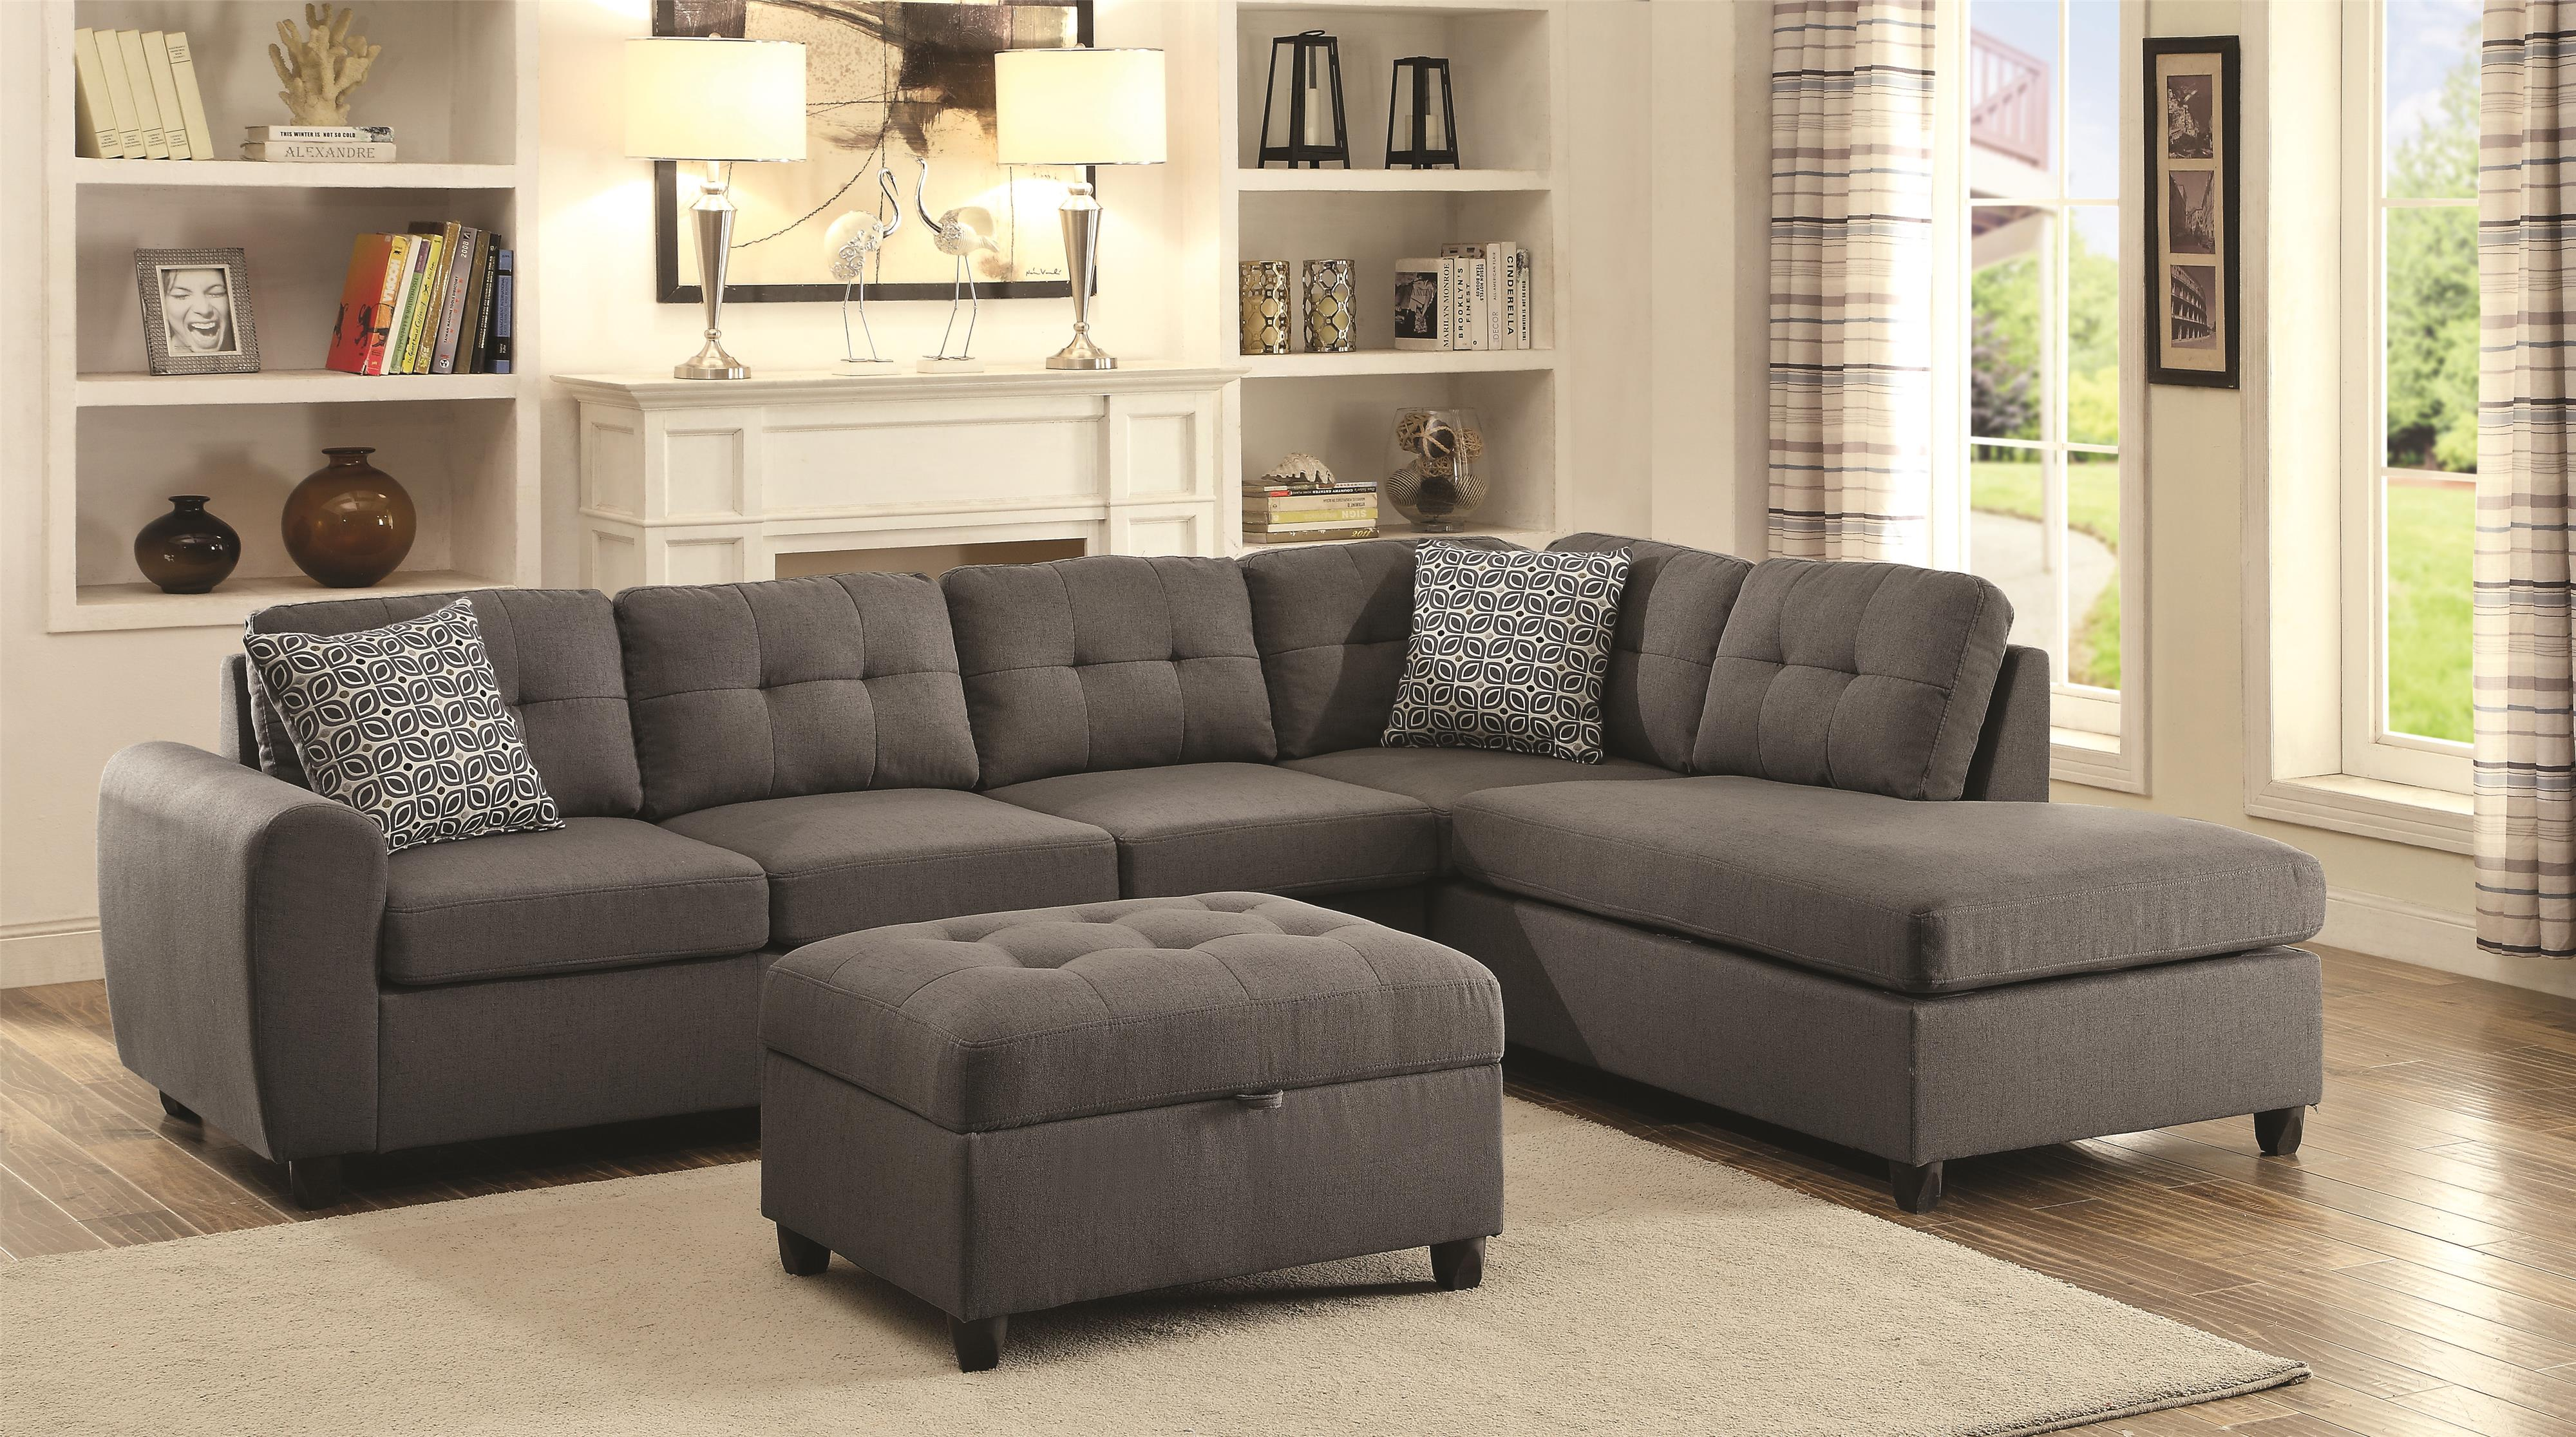 coaster stonenesse living room group del sol furniture stationary living room groups